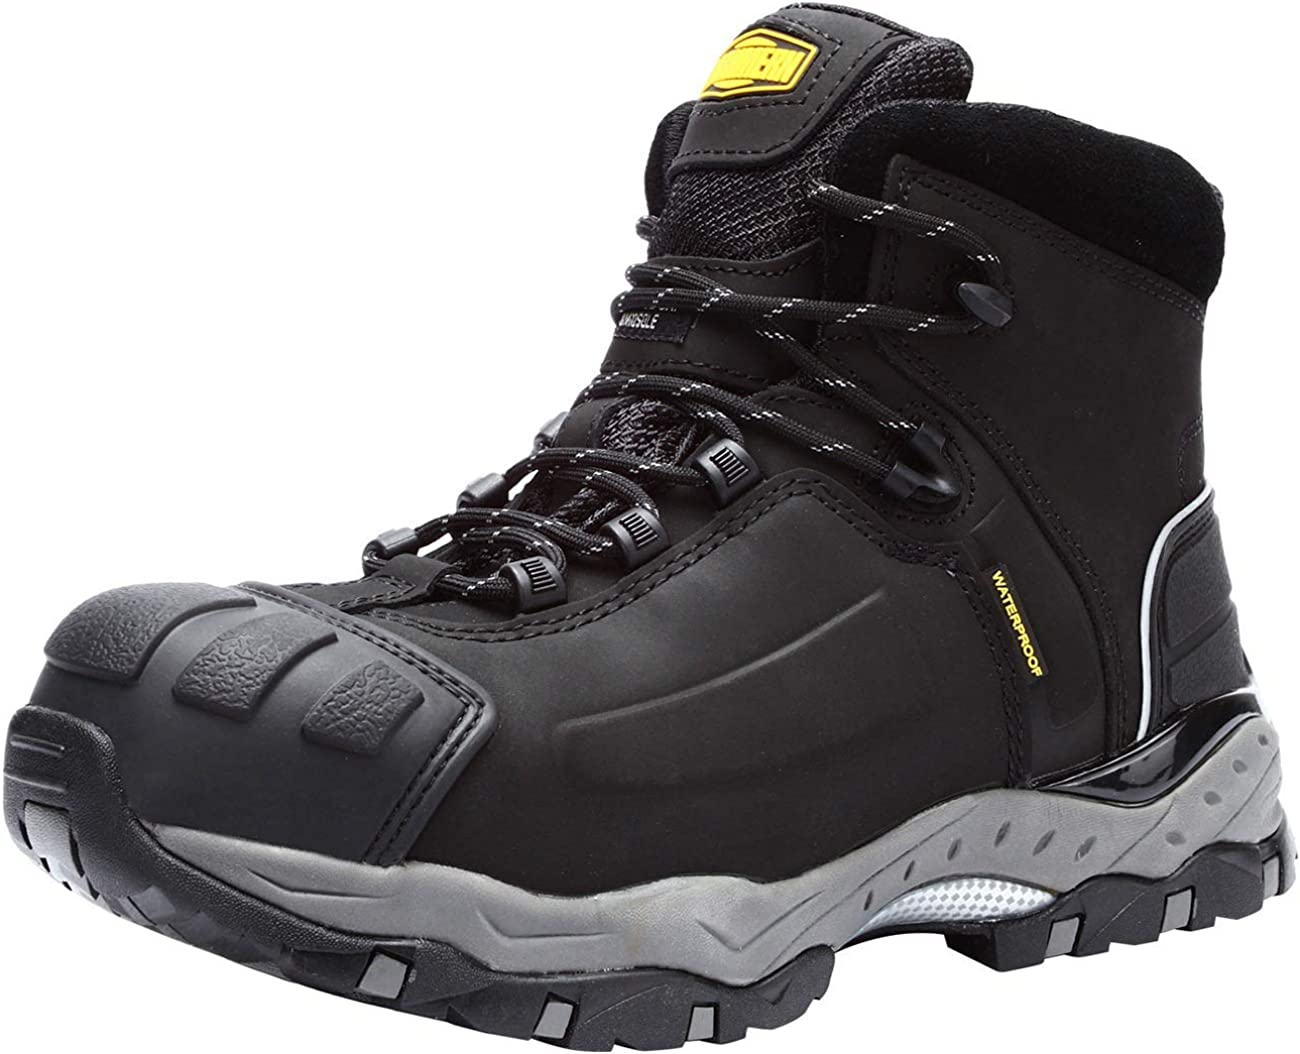 LARNMERN Steel Toe Work Boots Men Waterproof HRO Heat & Slip Resistant S3 Safety Shoes